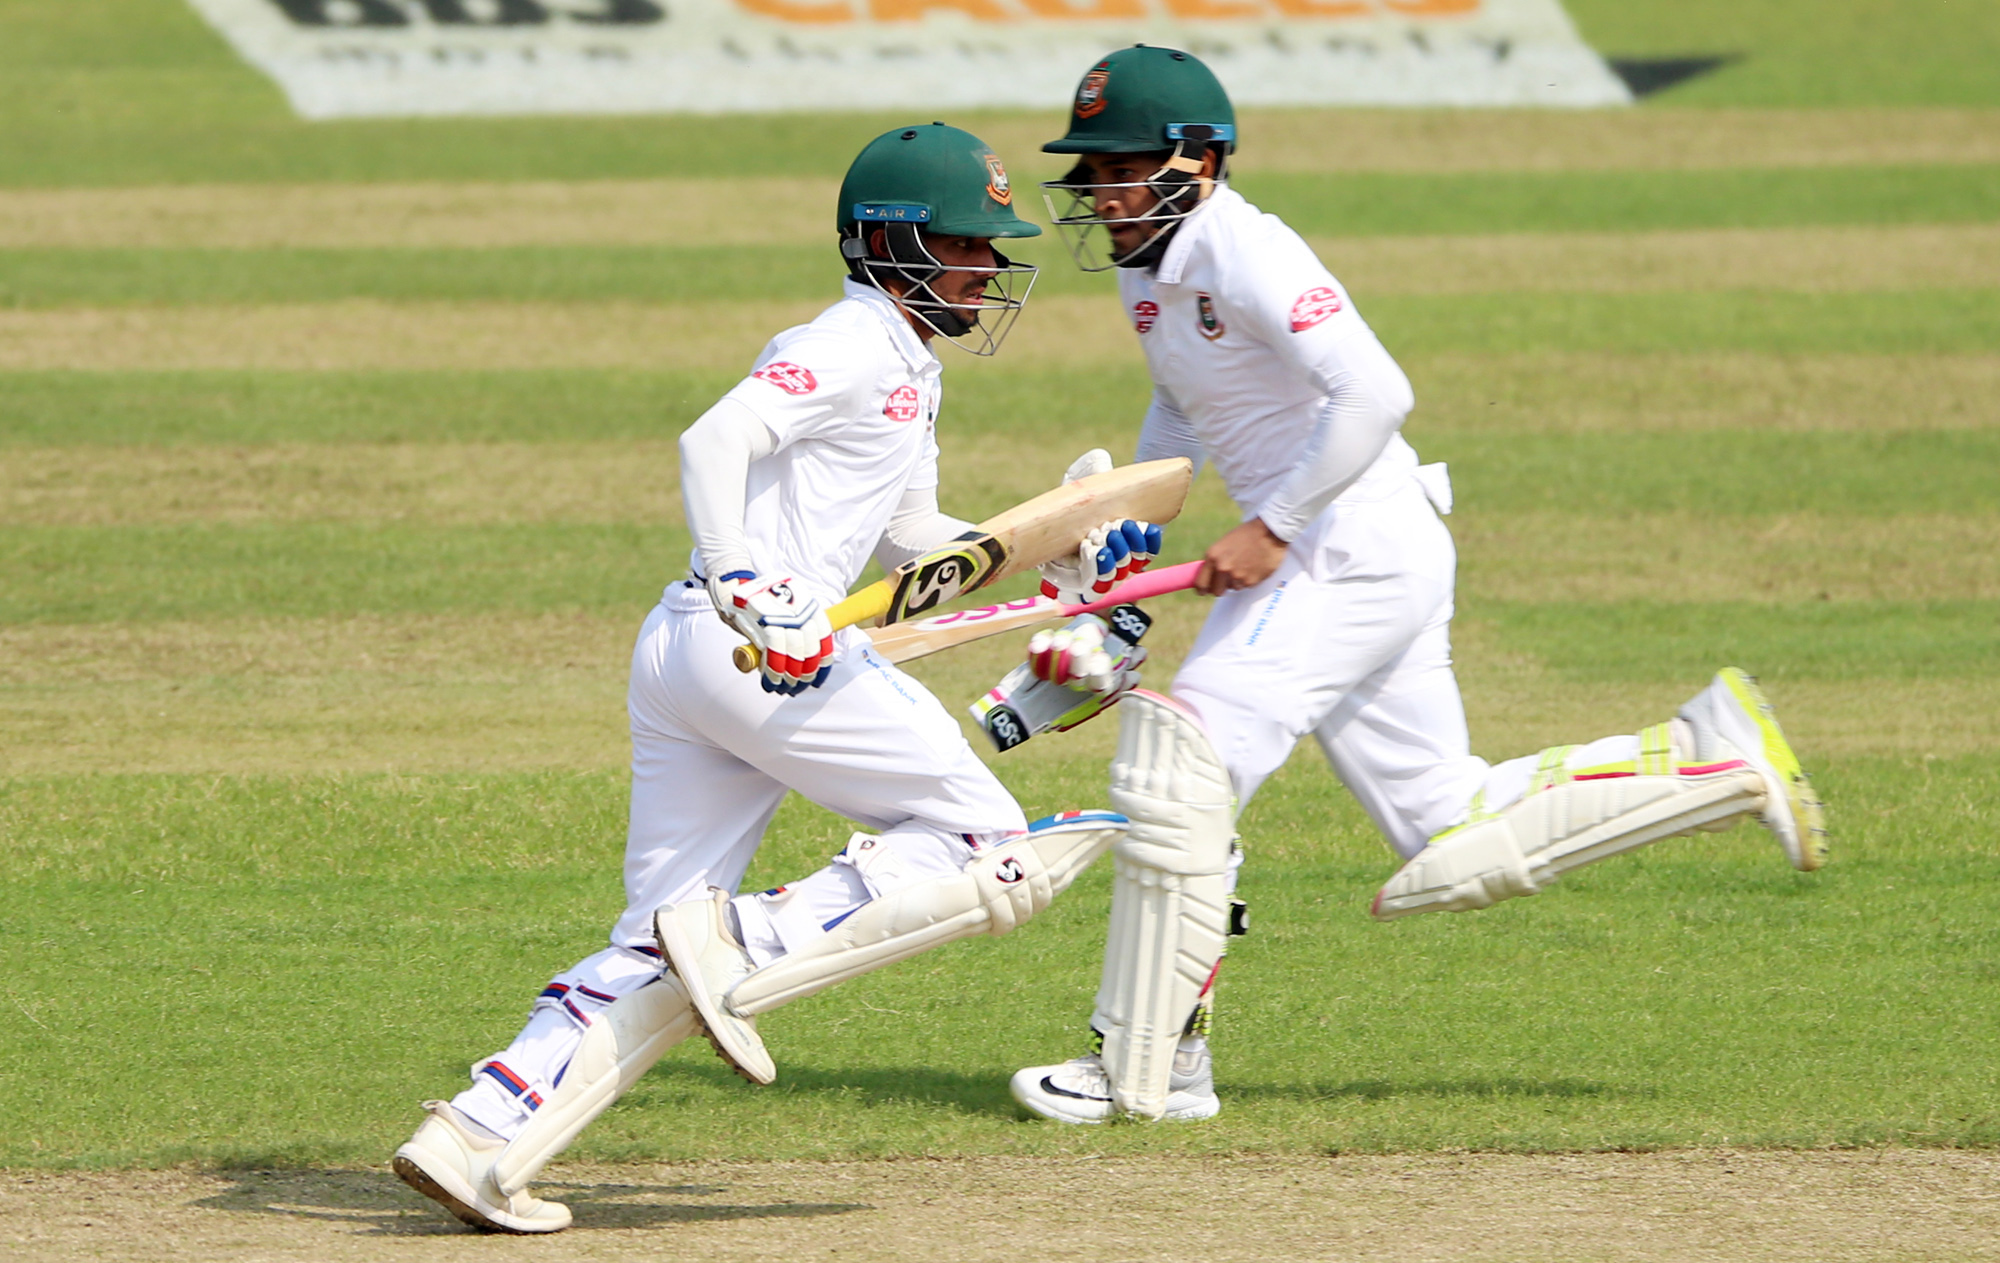 Mominul Haque (left) and Mushfiqur Rahim running between wicket during the first day play of the second Test between Bangladesh and Zimbabwe at the Sher-e-Bangla National Cricket Stadium in the city's Mirpur on Sunday. Both batsmen hit century each on the day.